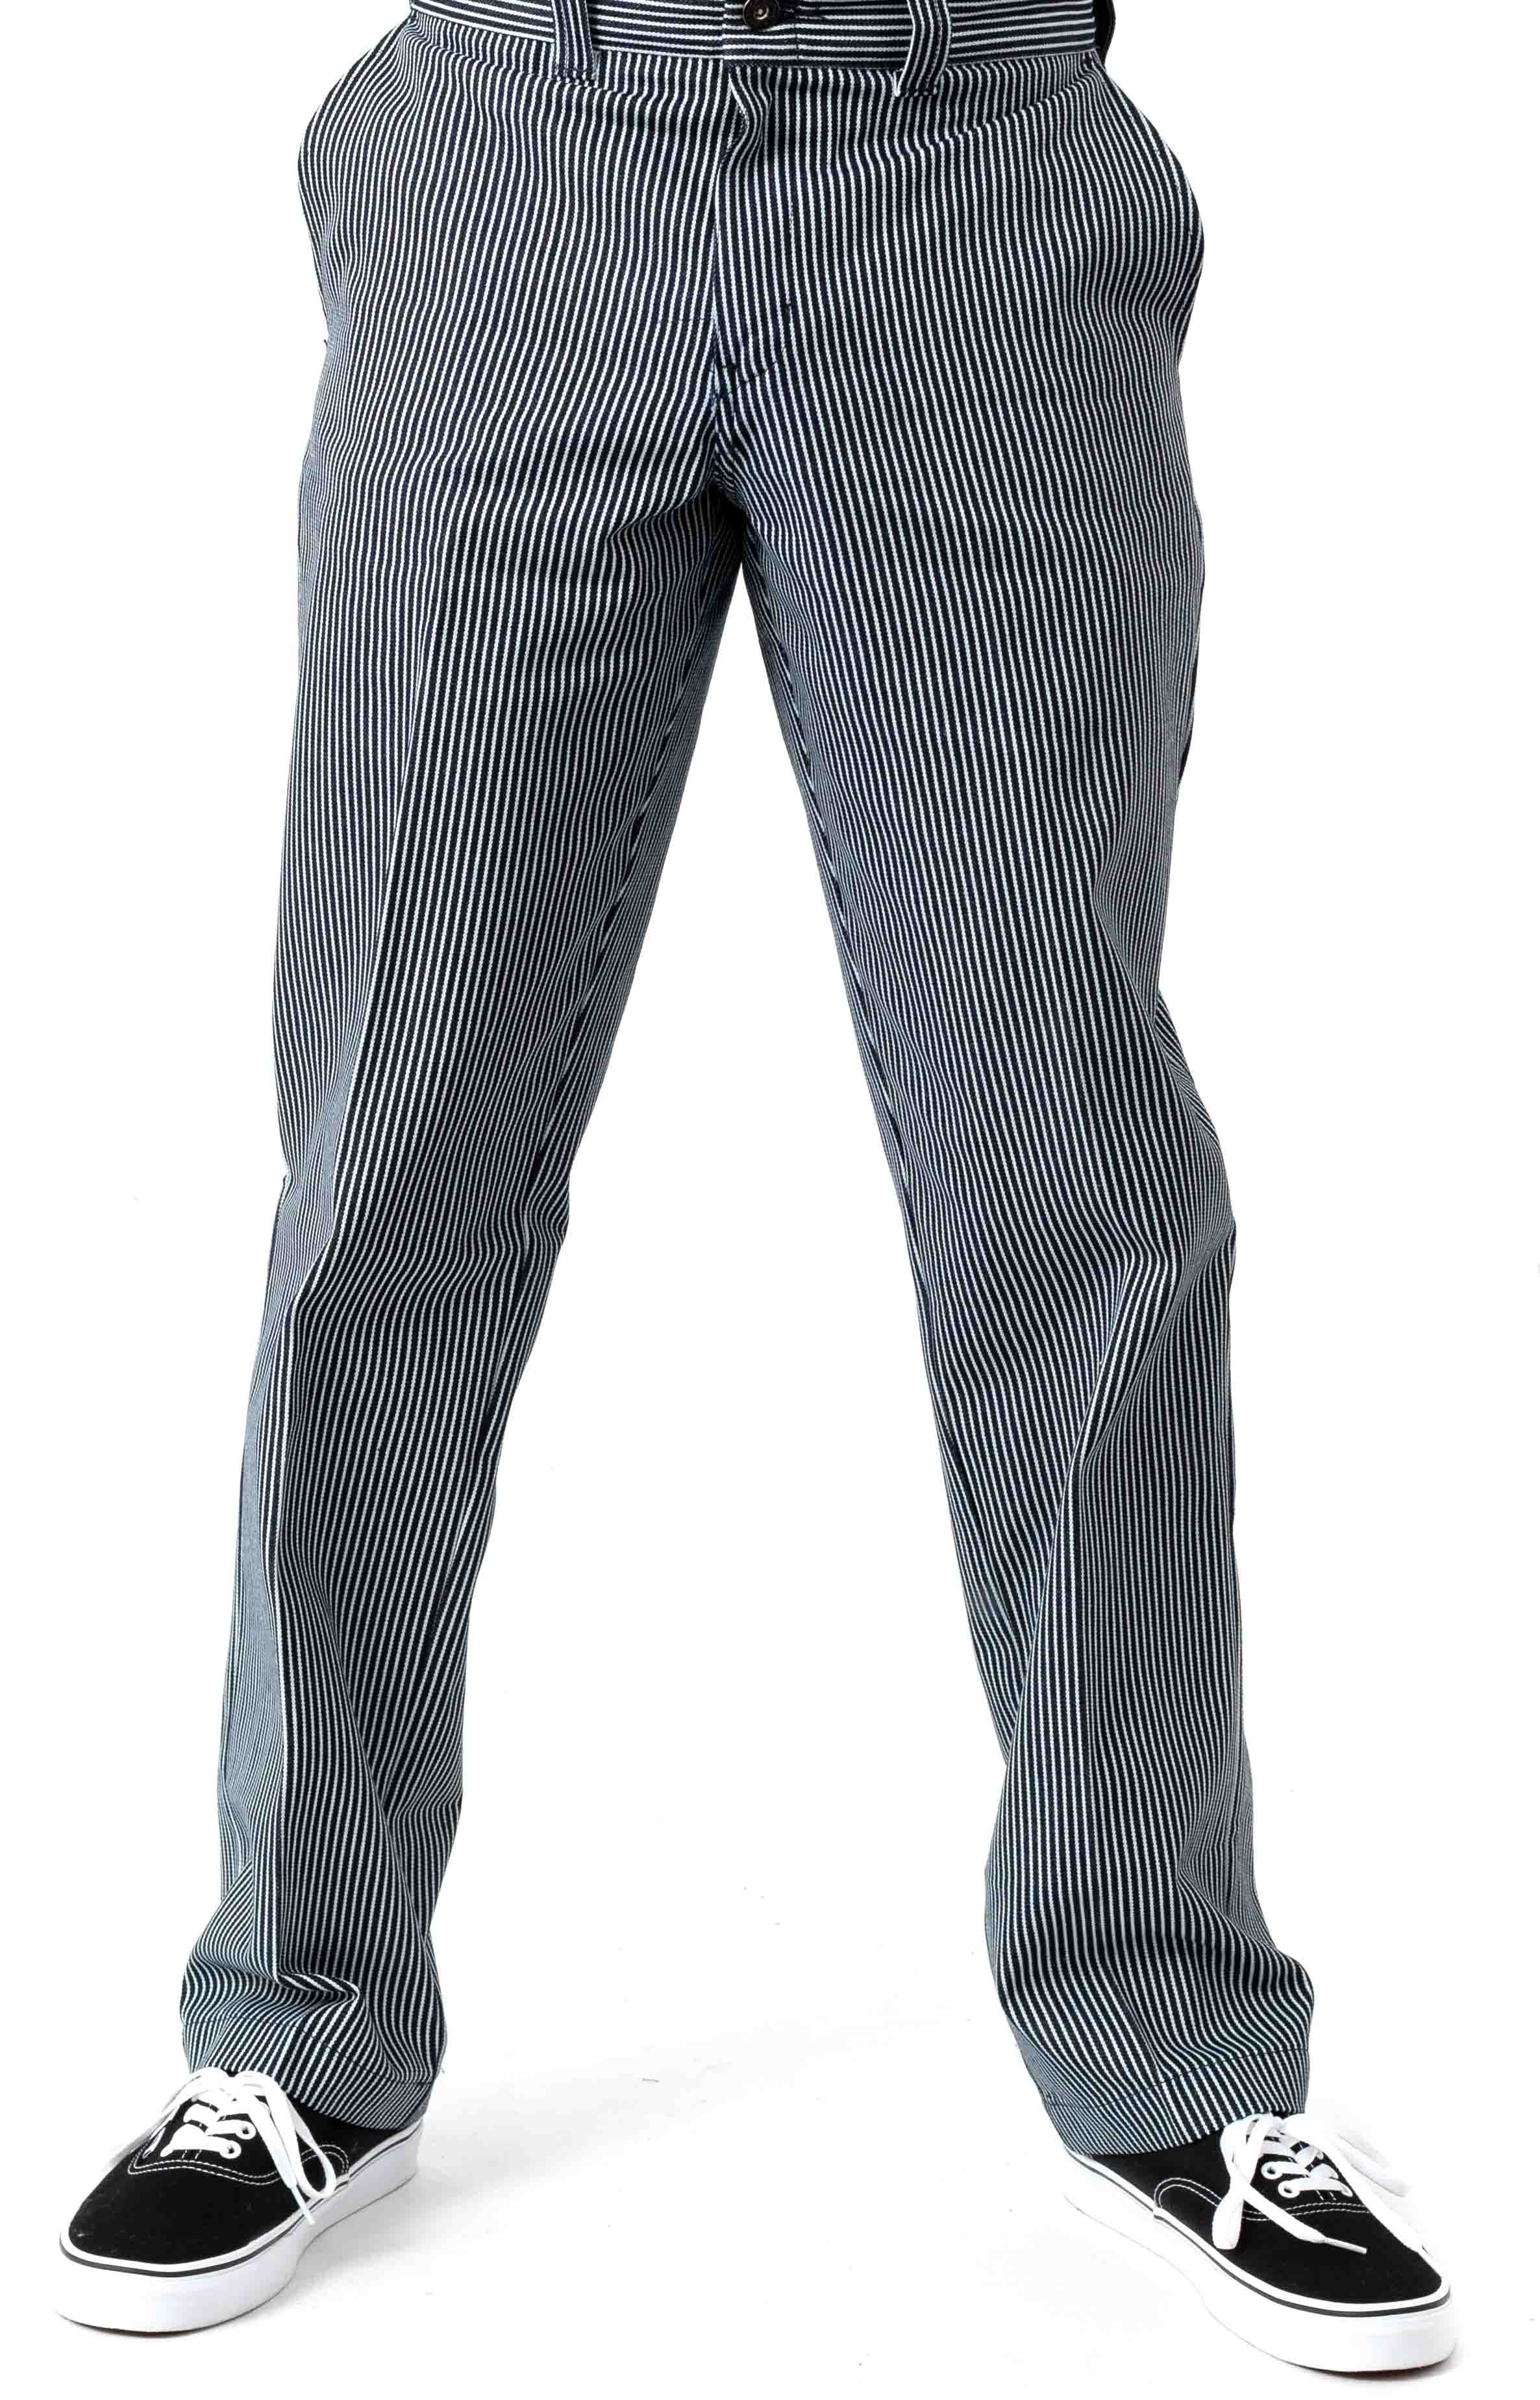 (WP894HHS) '67 Slim Fit Twill Hickory Stripe Pant - Blue White Hickory Stripe  2